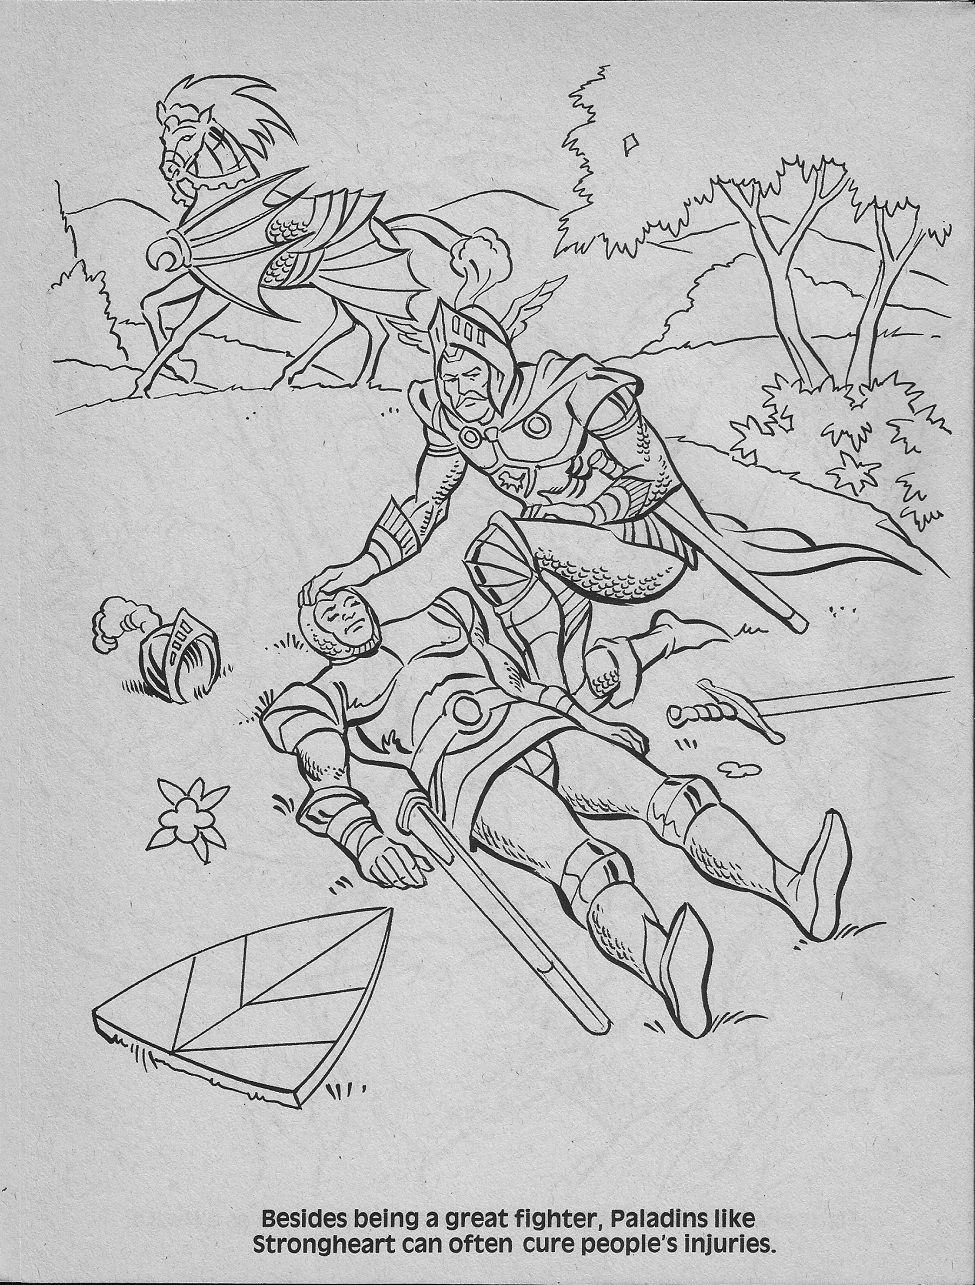 ghostbusters coloring pages - advanced dungeons dragons characters coloring book 1983 part two